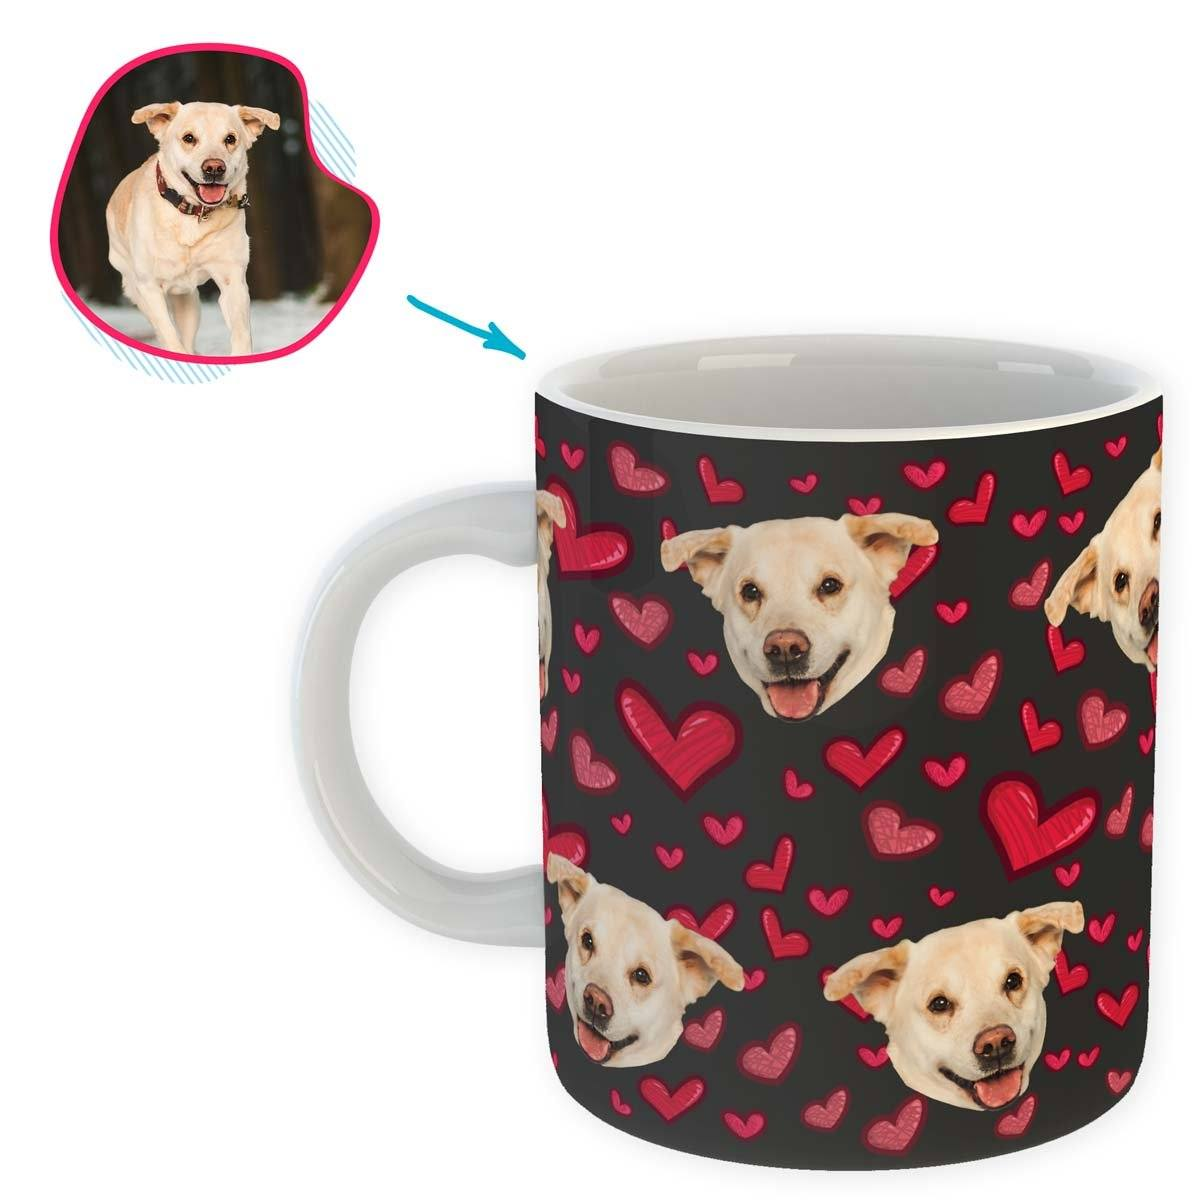 dark Heart mug personalized with photo of face printed on it